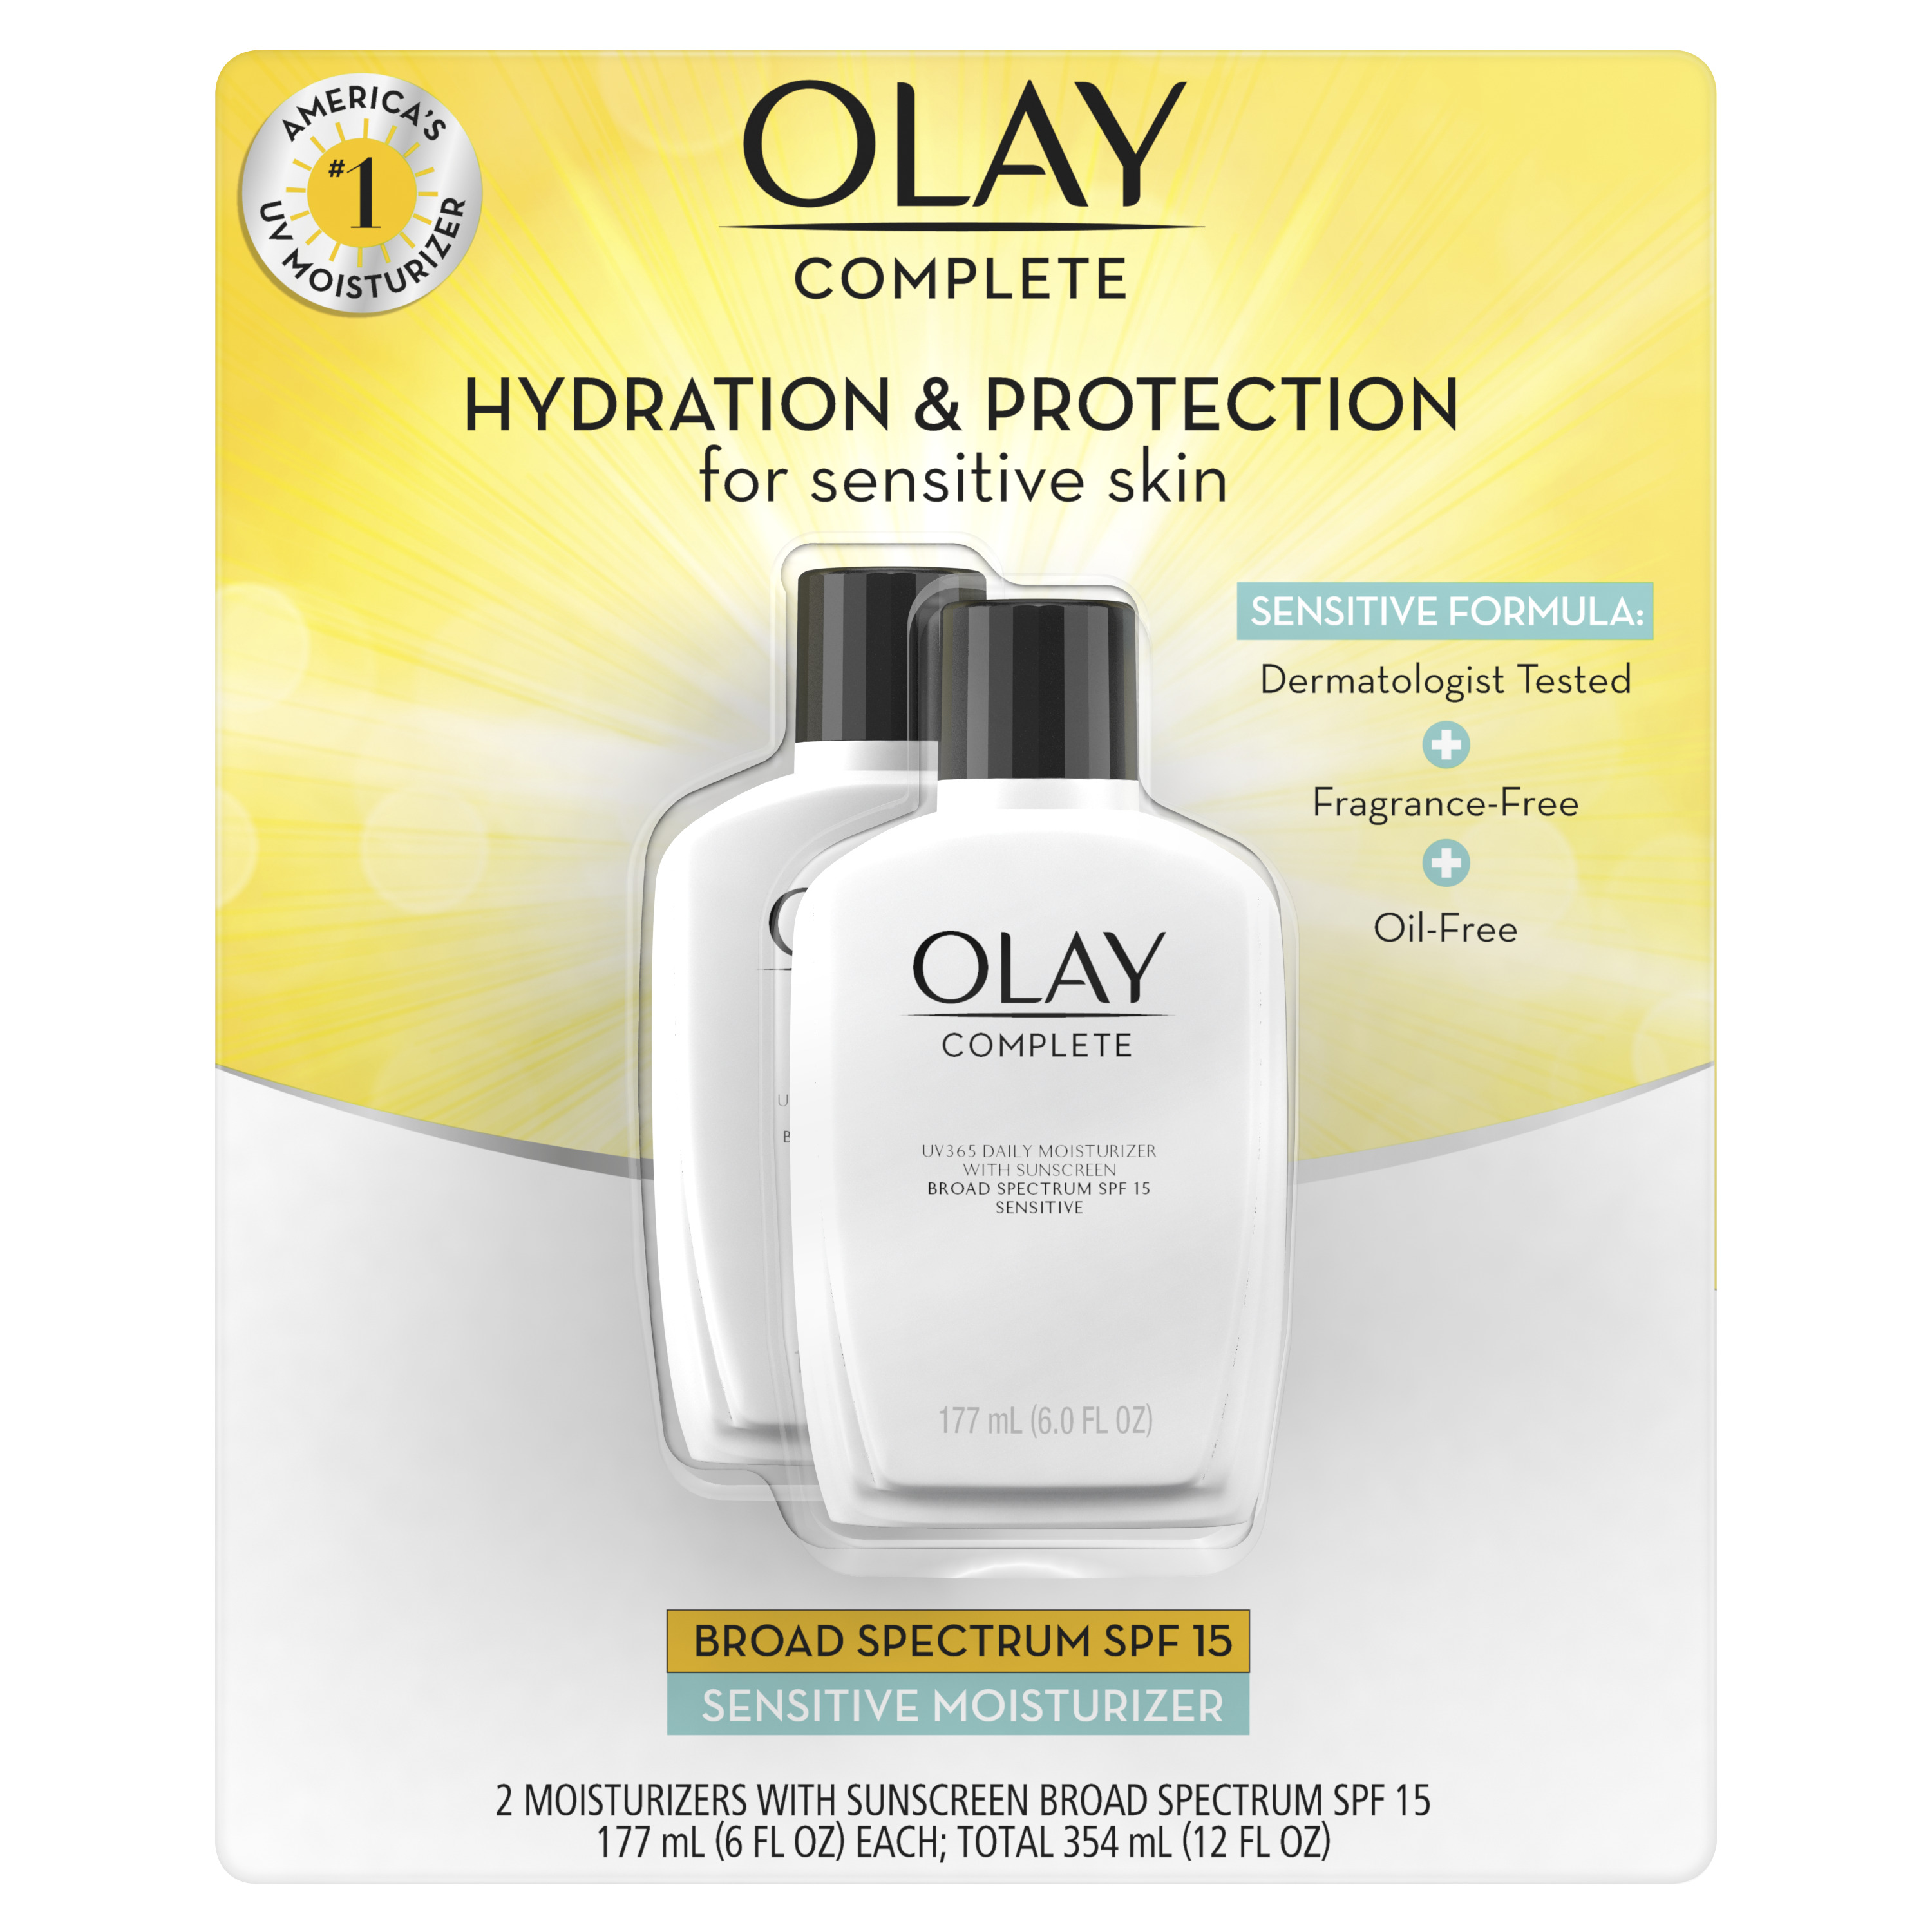 Olay Complete Lotion Moisturizer with SPF 15 Sensitive, 6.0 oz, Pack of 2